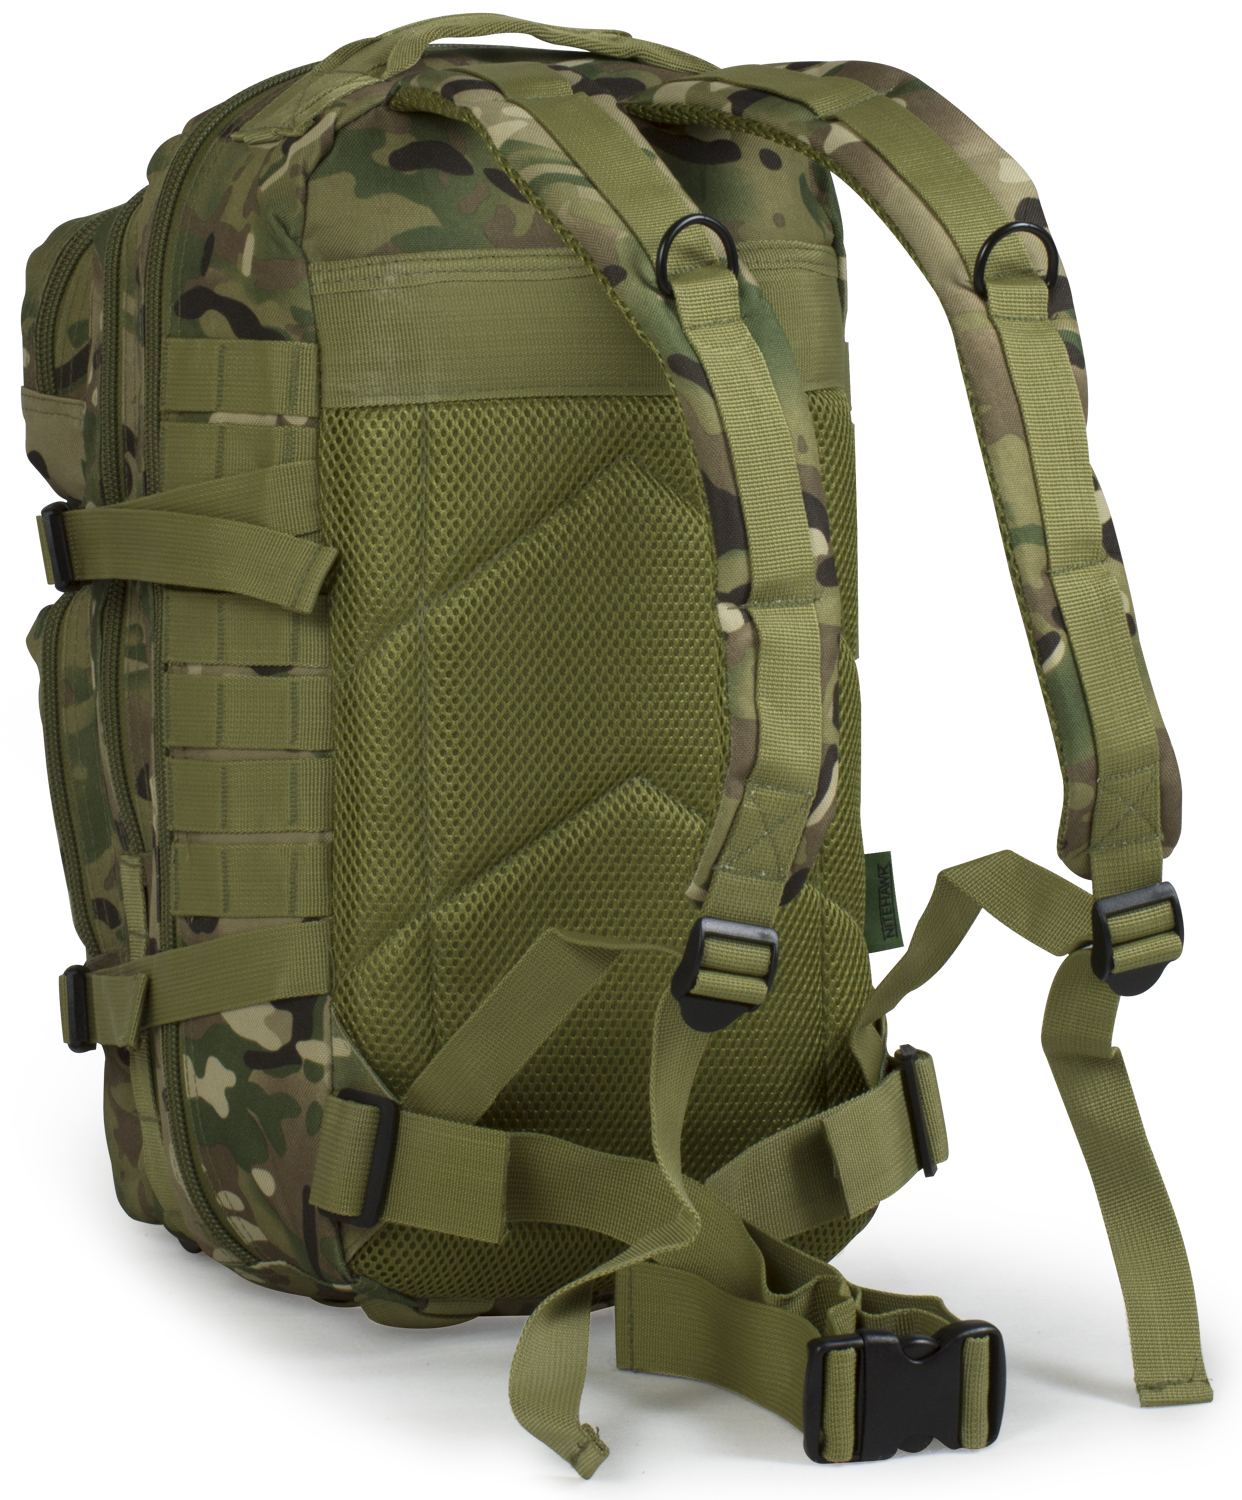 Sentinel 30l Molle Assault Pack Backpack Rucksack Military Cadet Army Bag Nitehawk